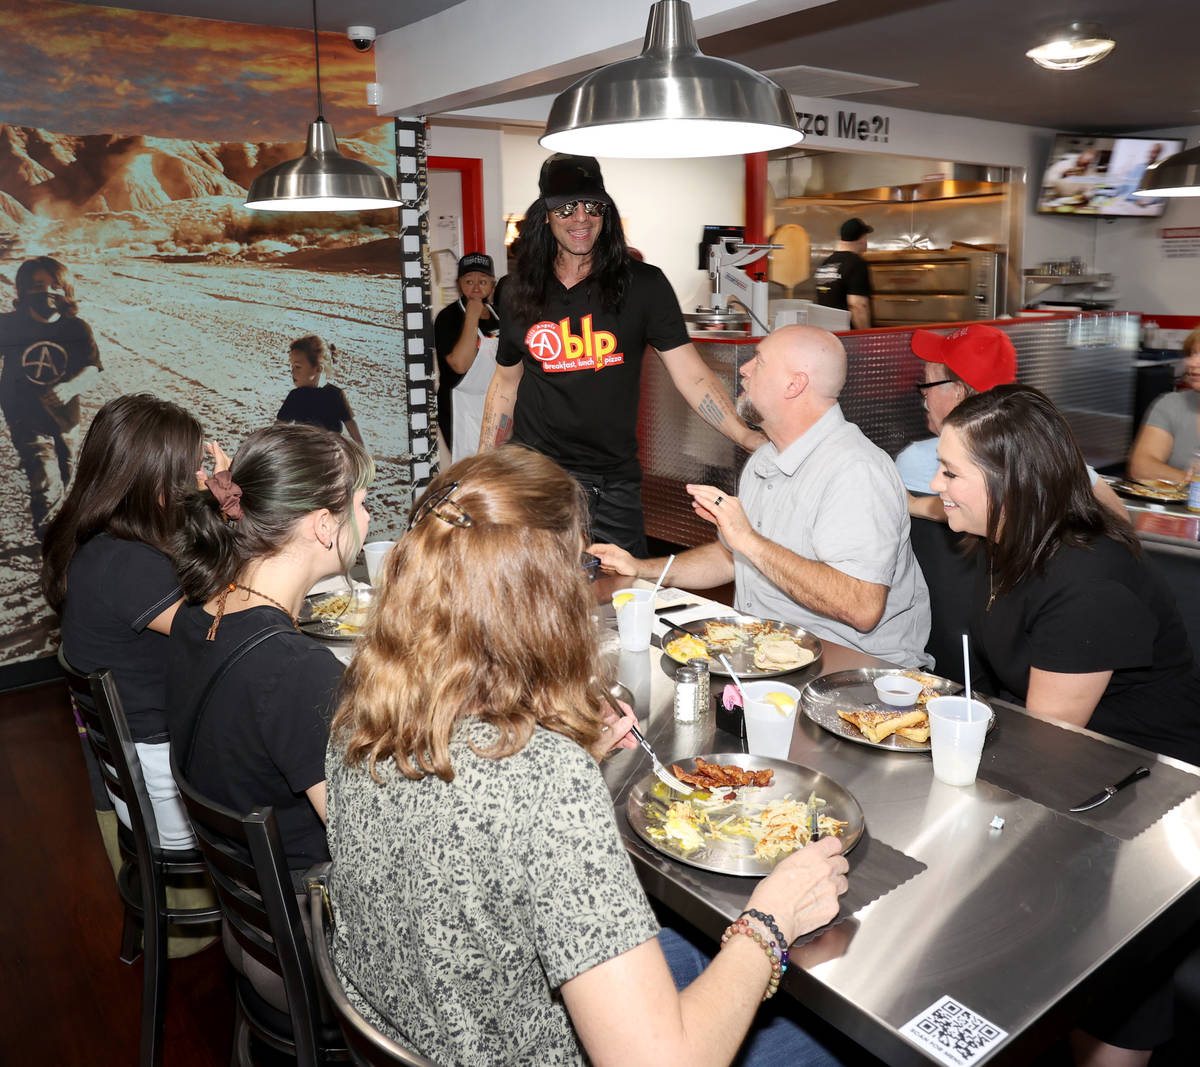 Criss Angel greets guests at his new restaurant, CABLP, in Overton during the grand opening Fri ...